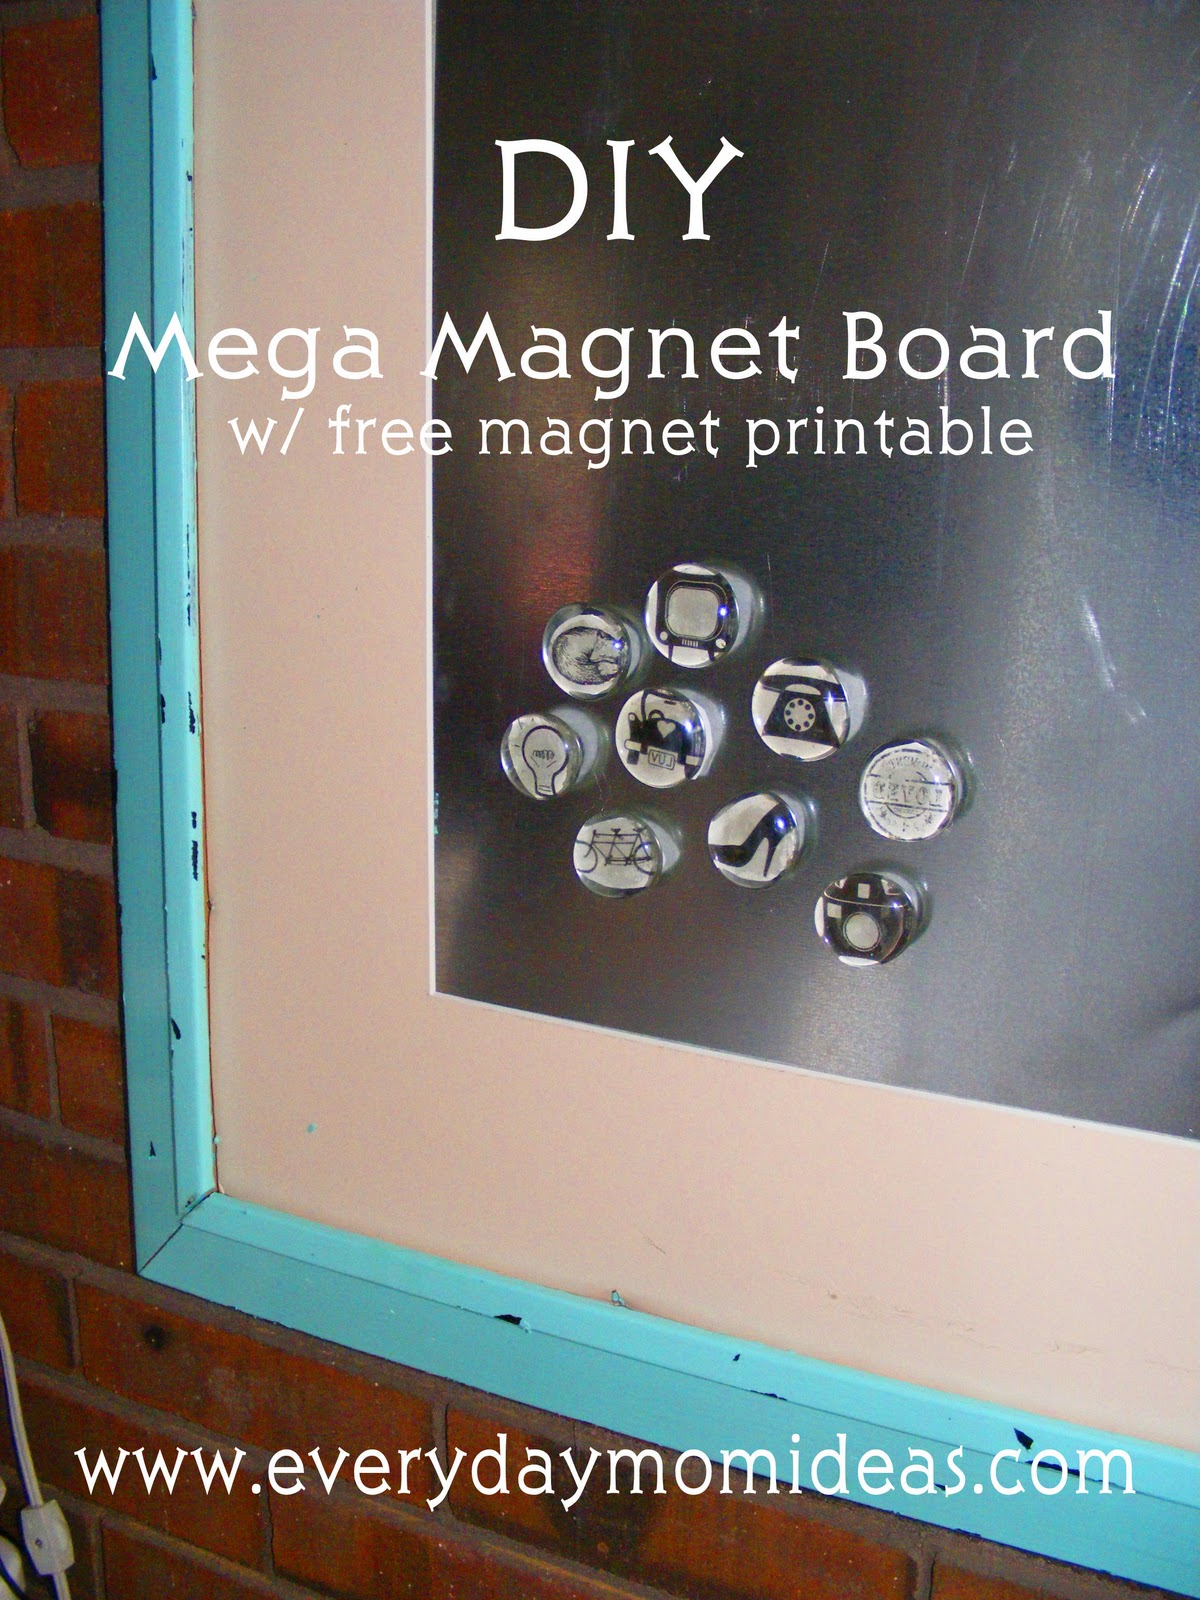 diy mega magnet board with free magnet printable everyday mom ideas